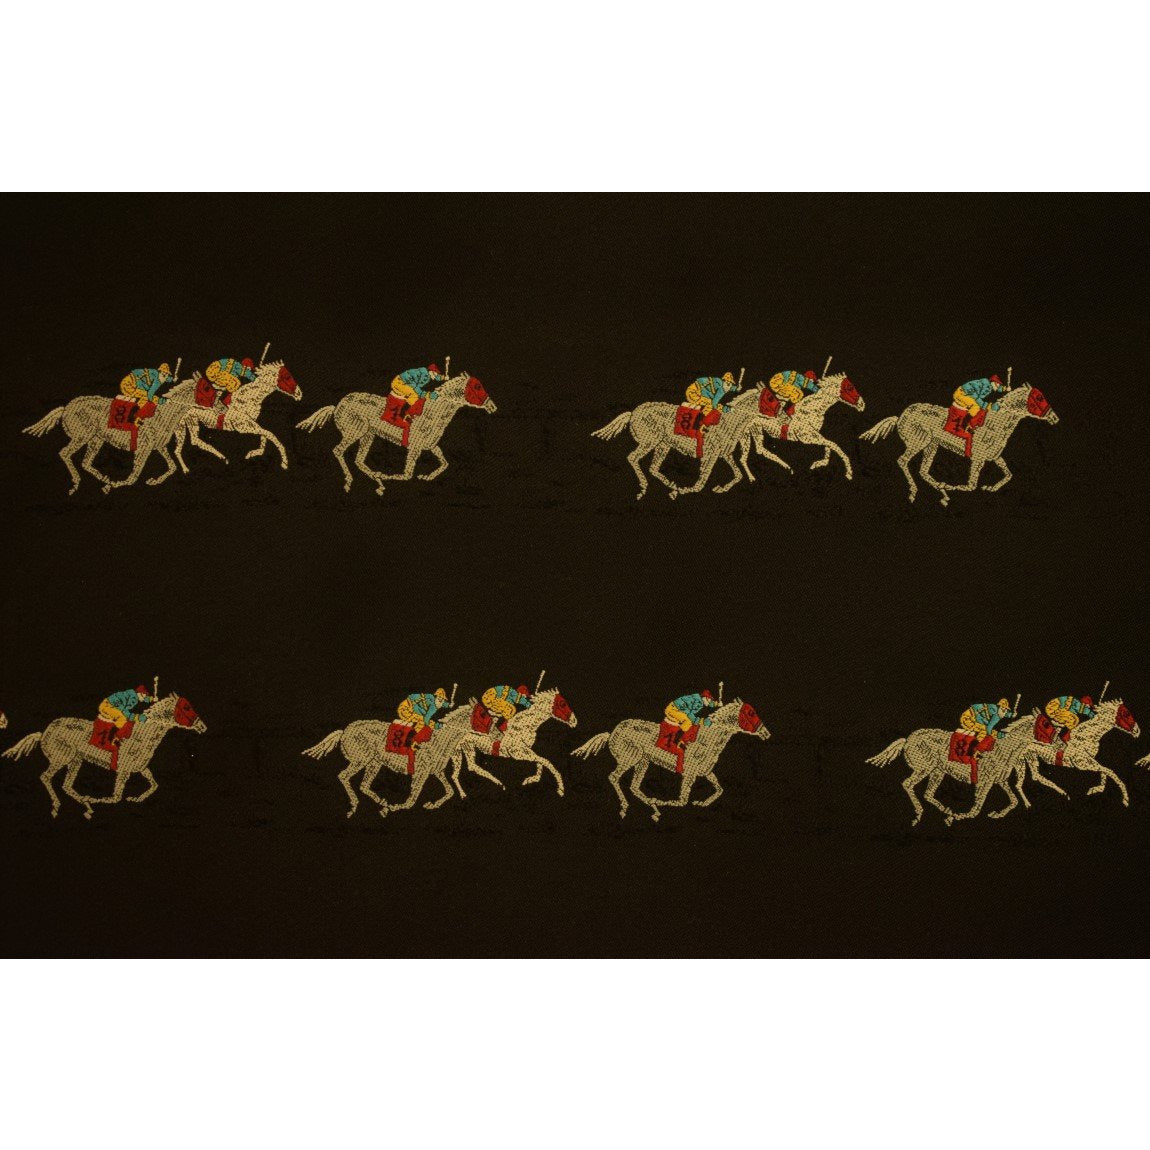 Black Silk Fabric w/ Jockeys & Horse Racehorses